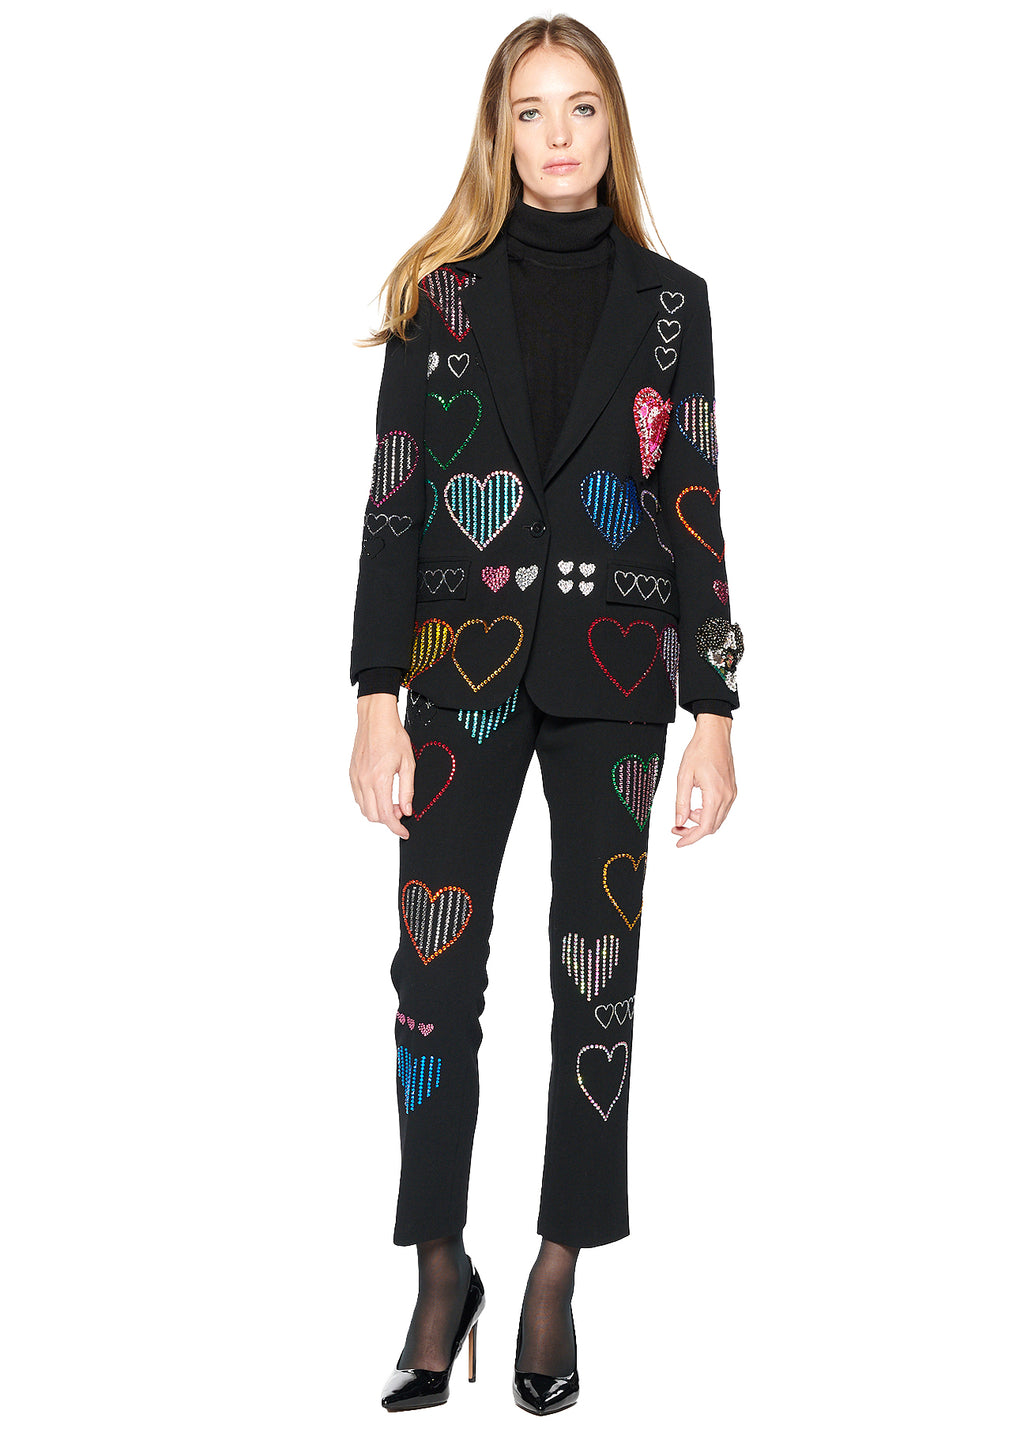 'HEARTS' LONG BLAZER - Women's Tops - Libertine